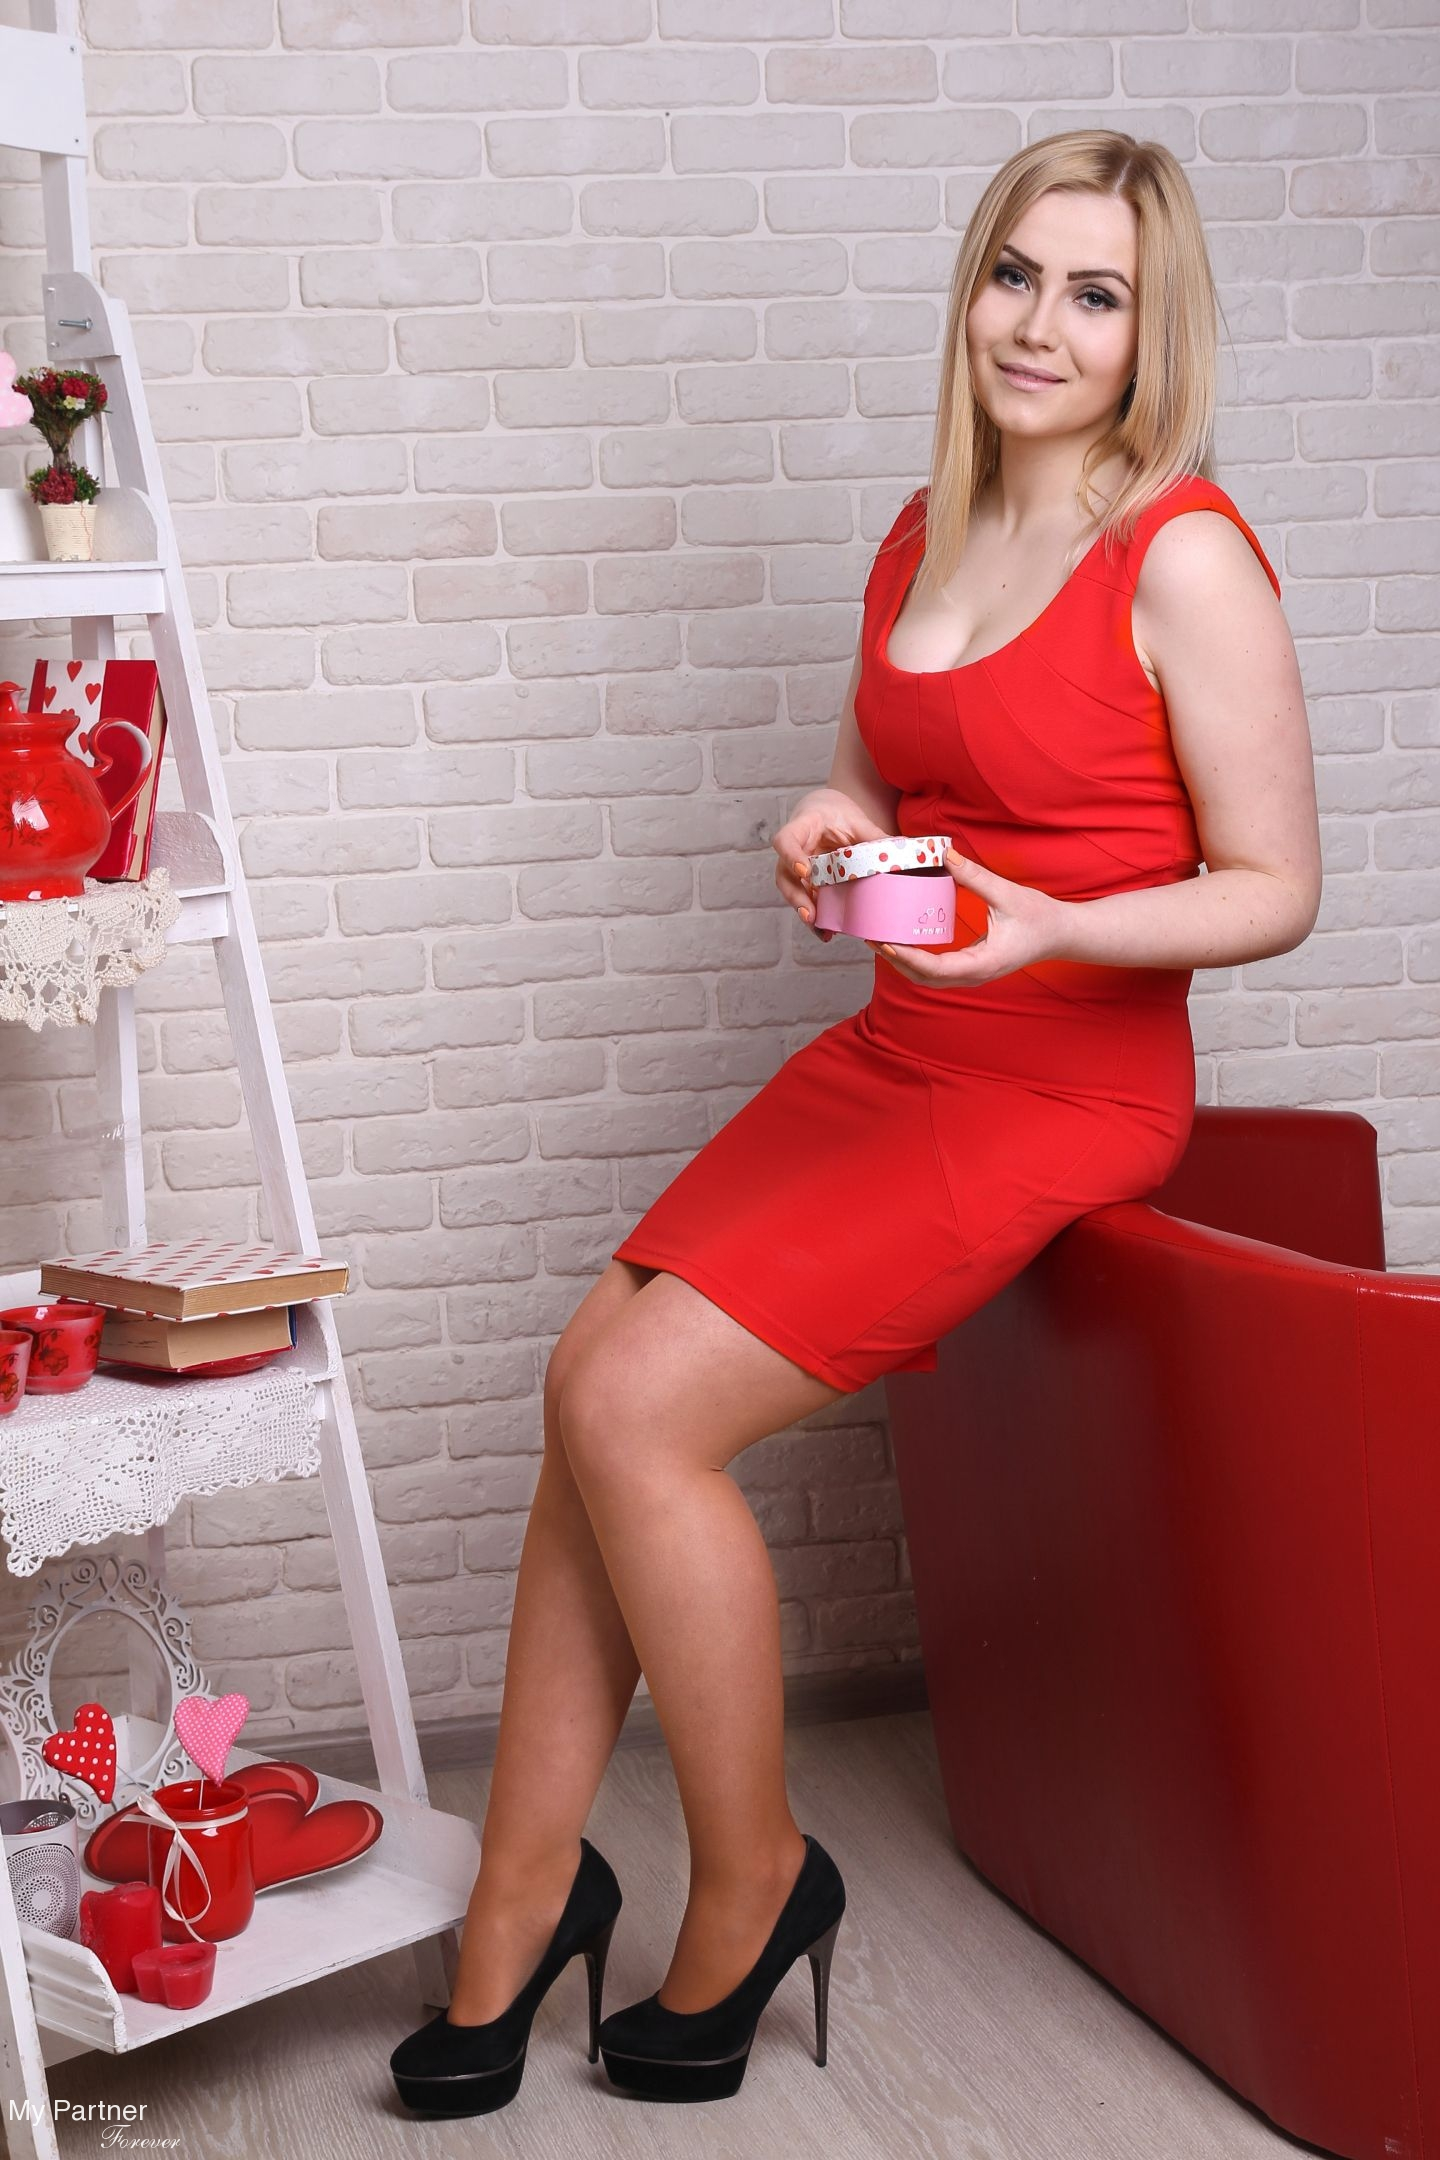 Free saskatchewan dating sites